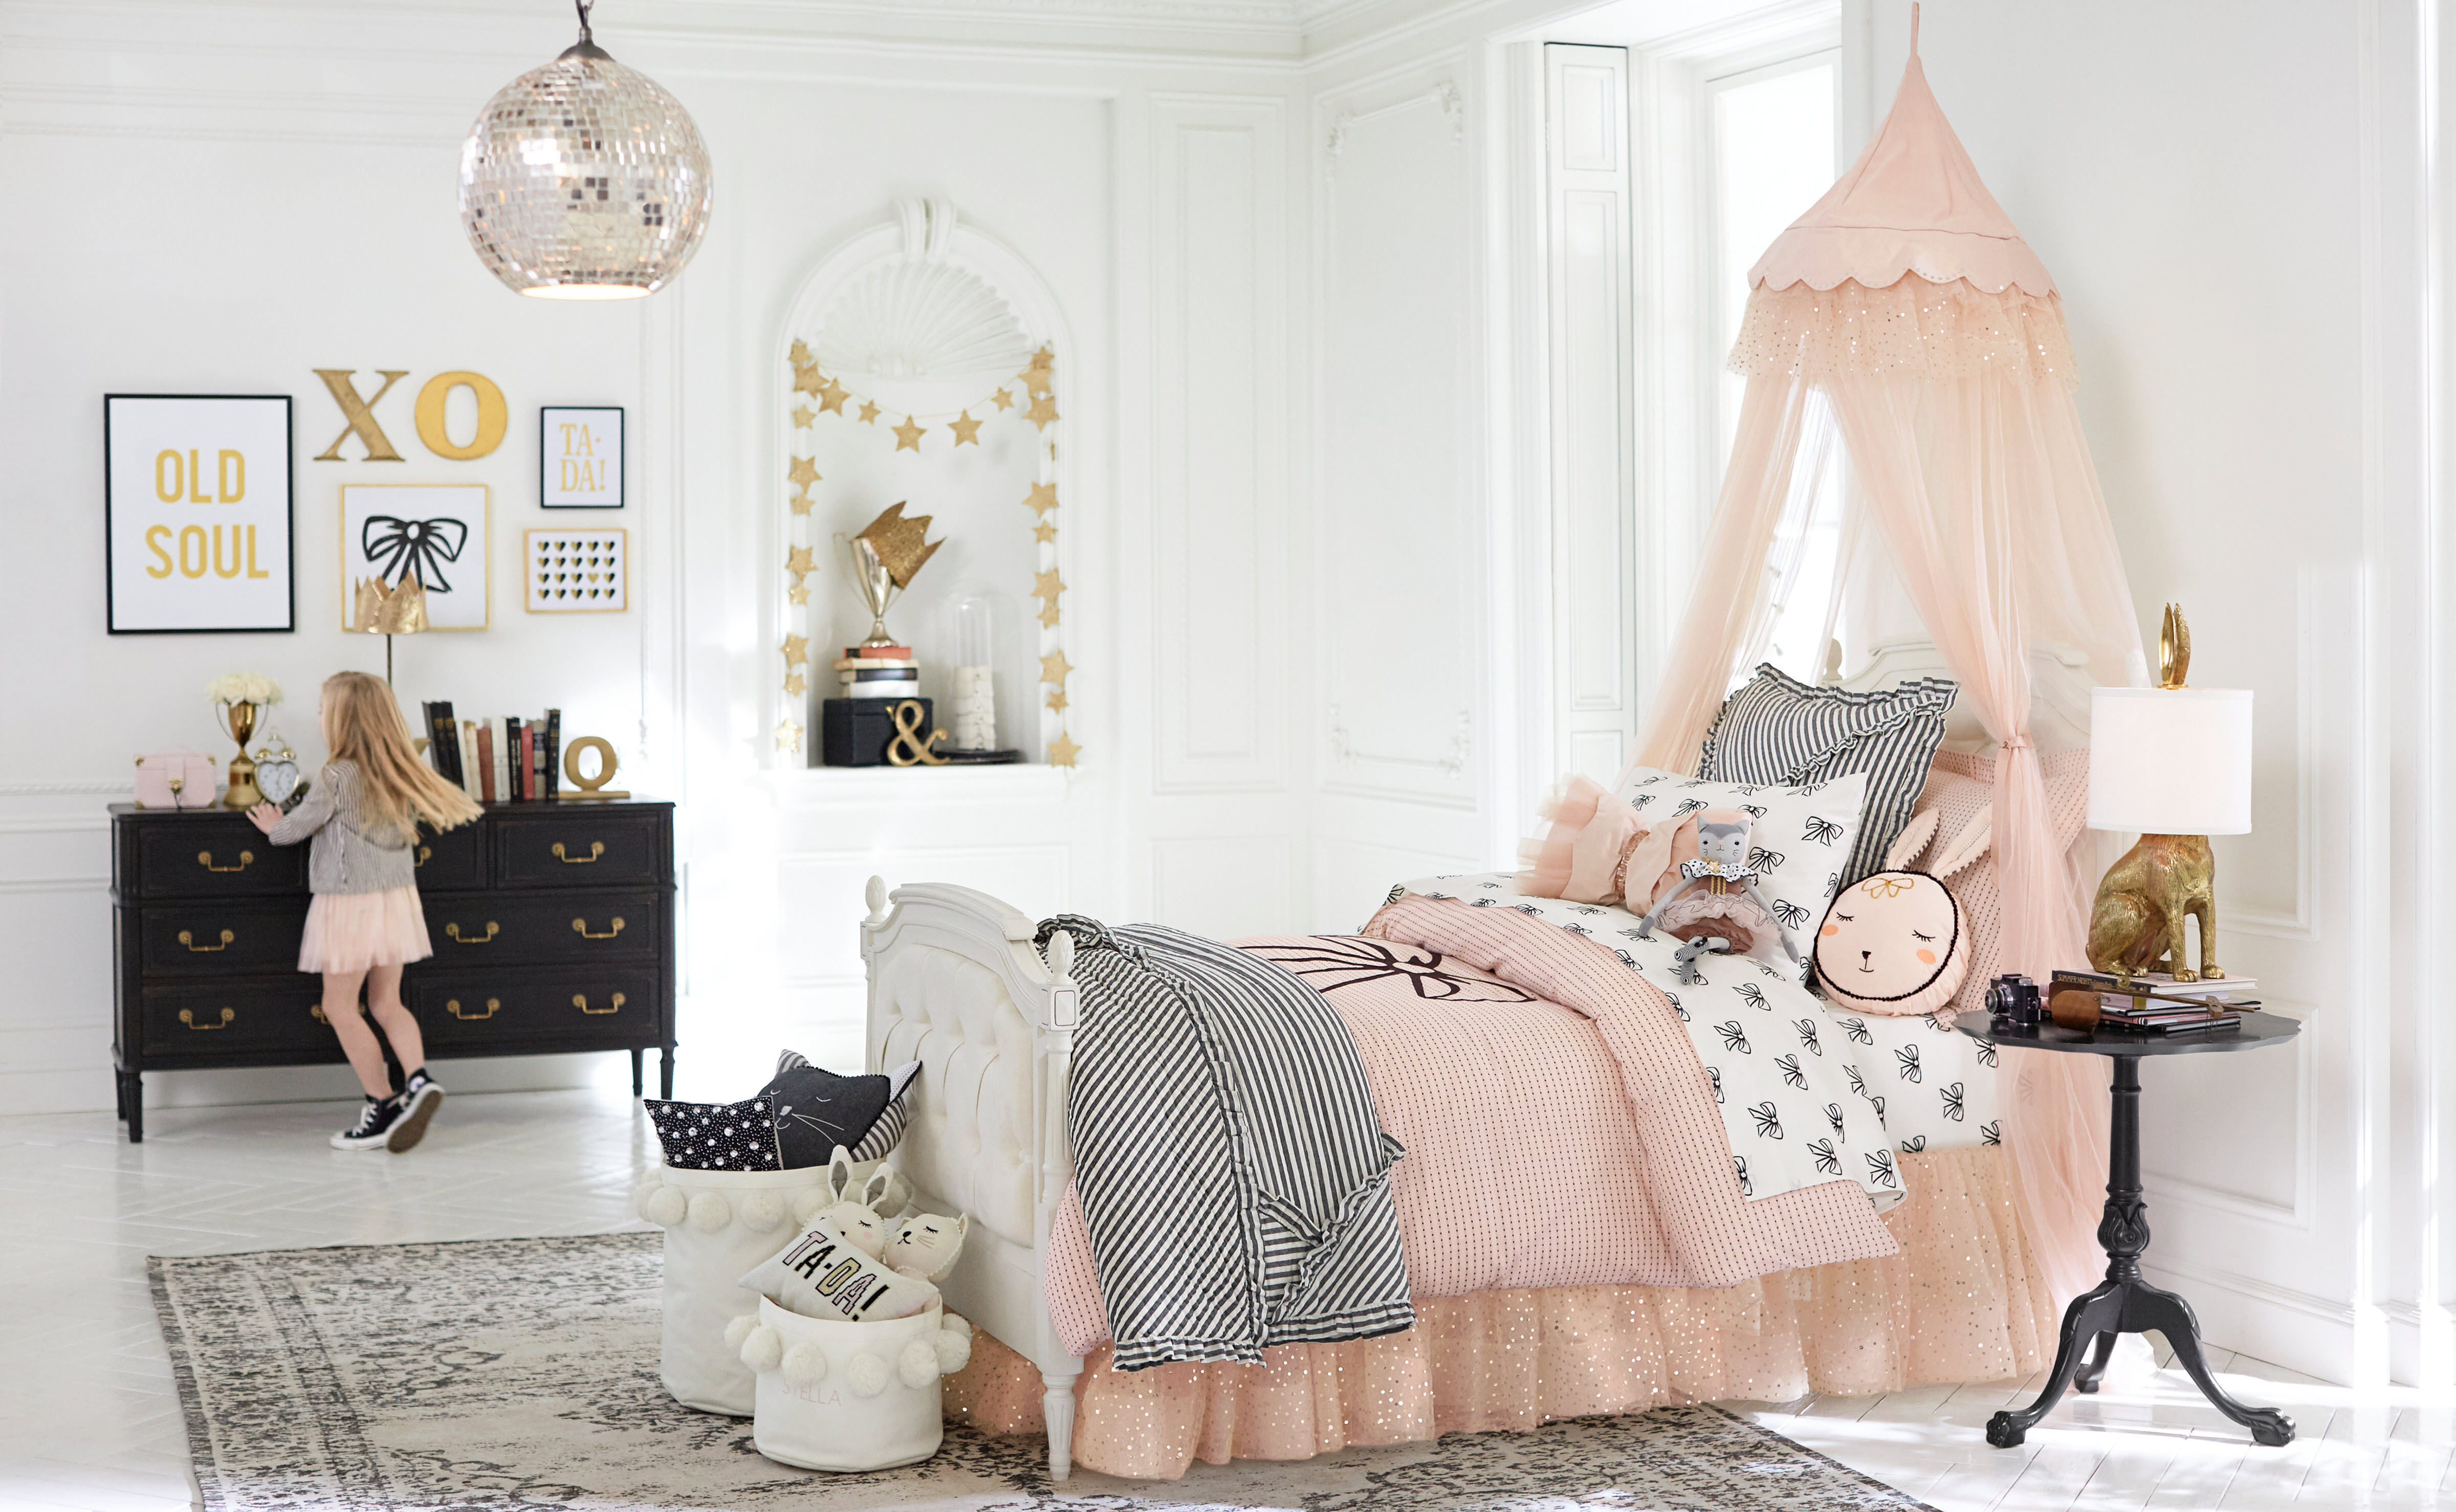 Pottery Barn Kids Unveils Imaginative New Collection With Fashion Duo Emily Current And Meritt Elliott Business Wire